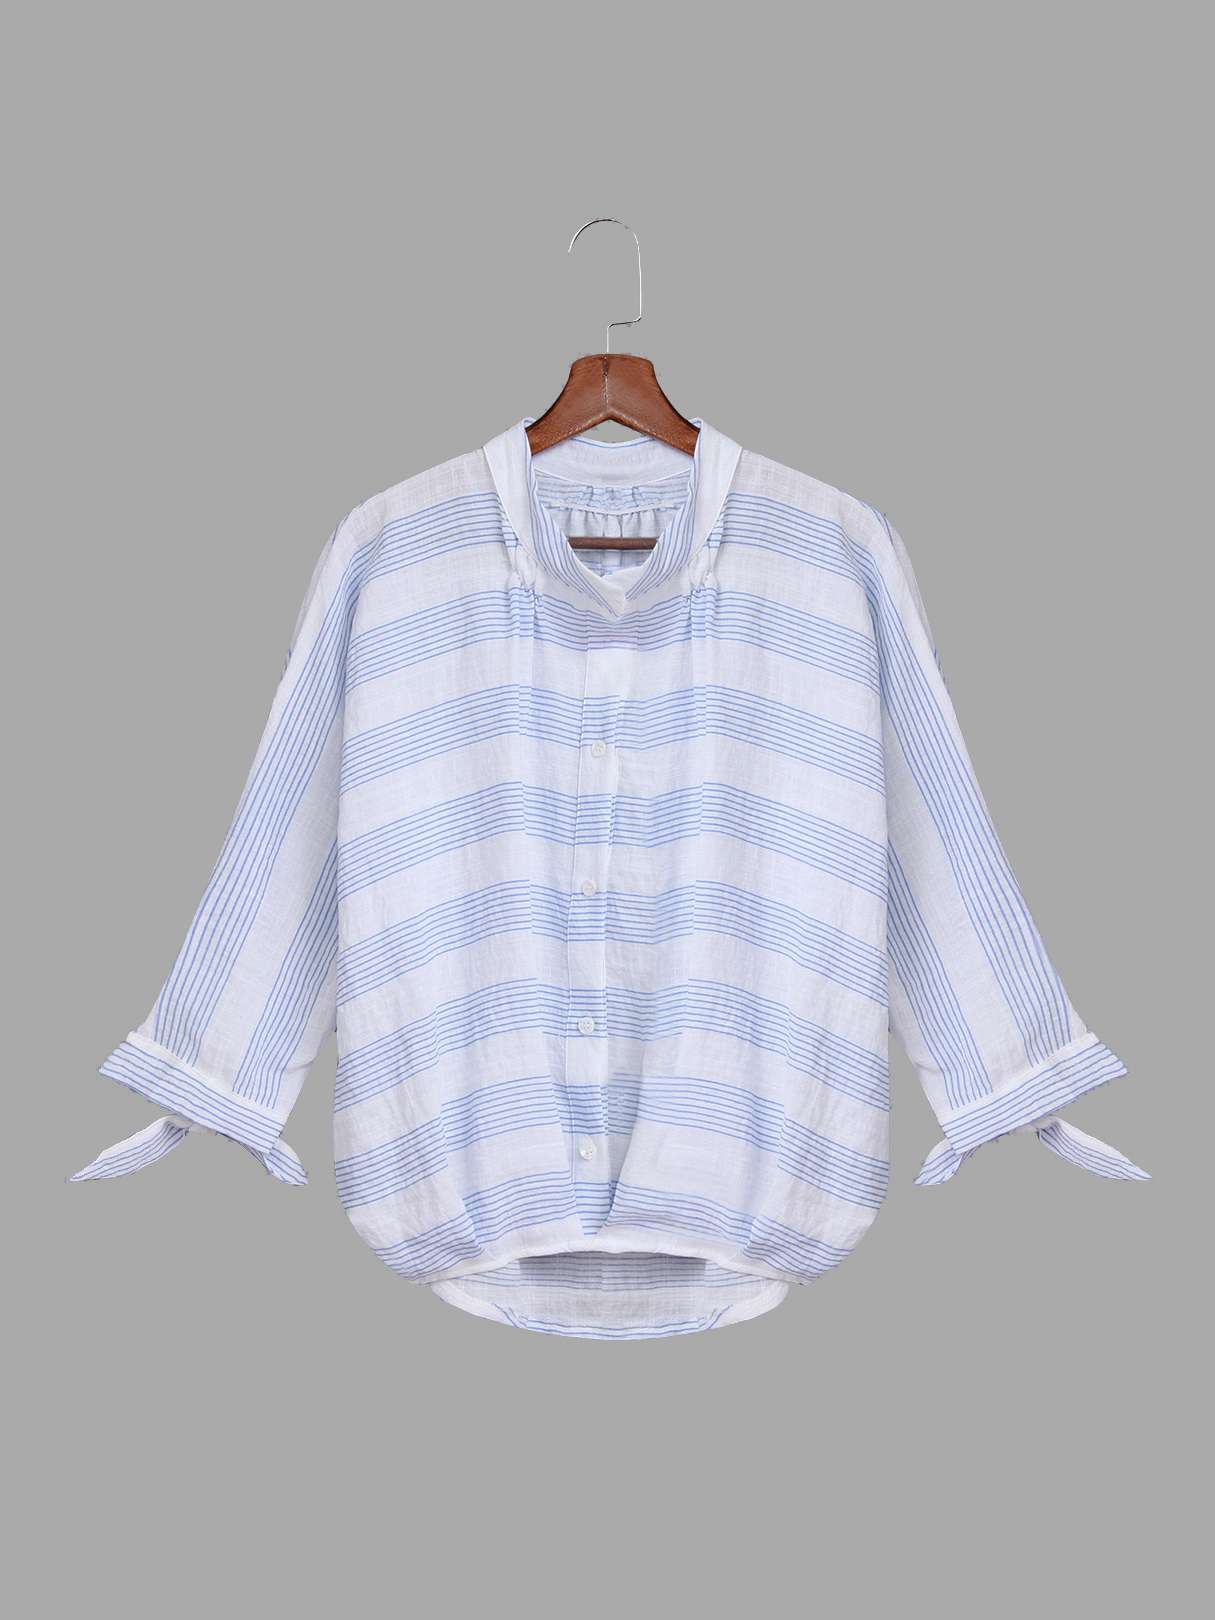 Blue Stripe Pattern Shirt In Sweet design stripe pattern shirt in sweet design